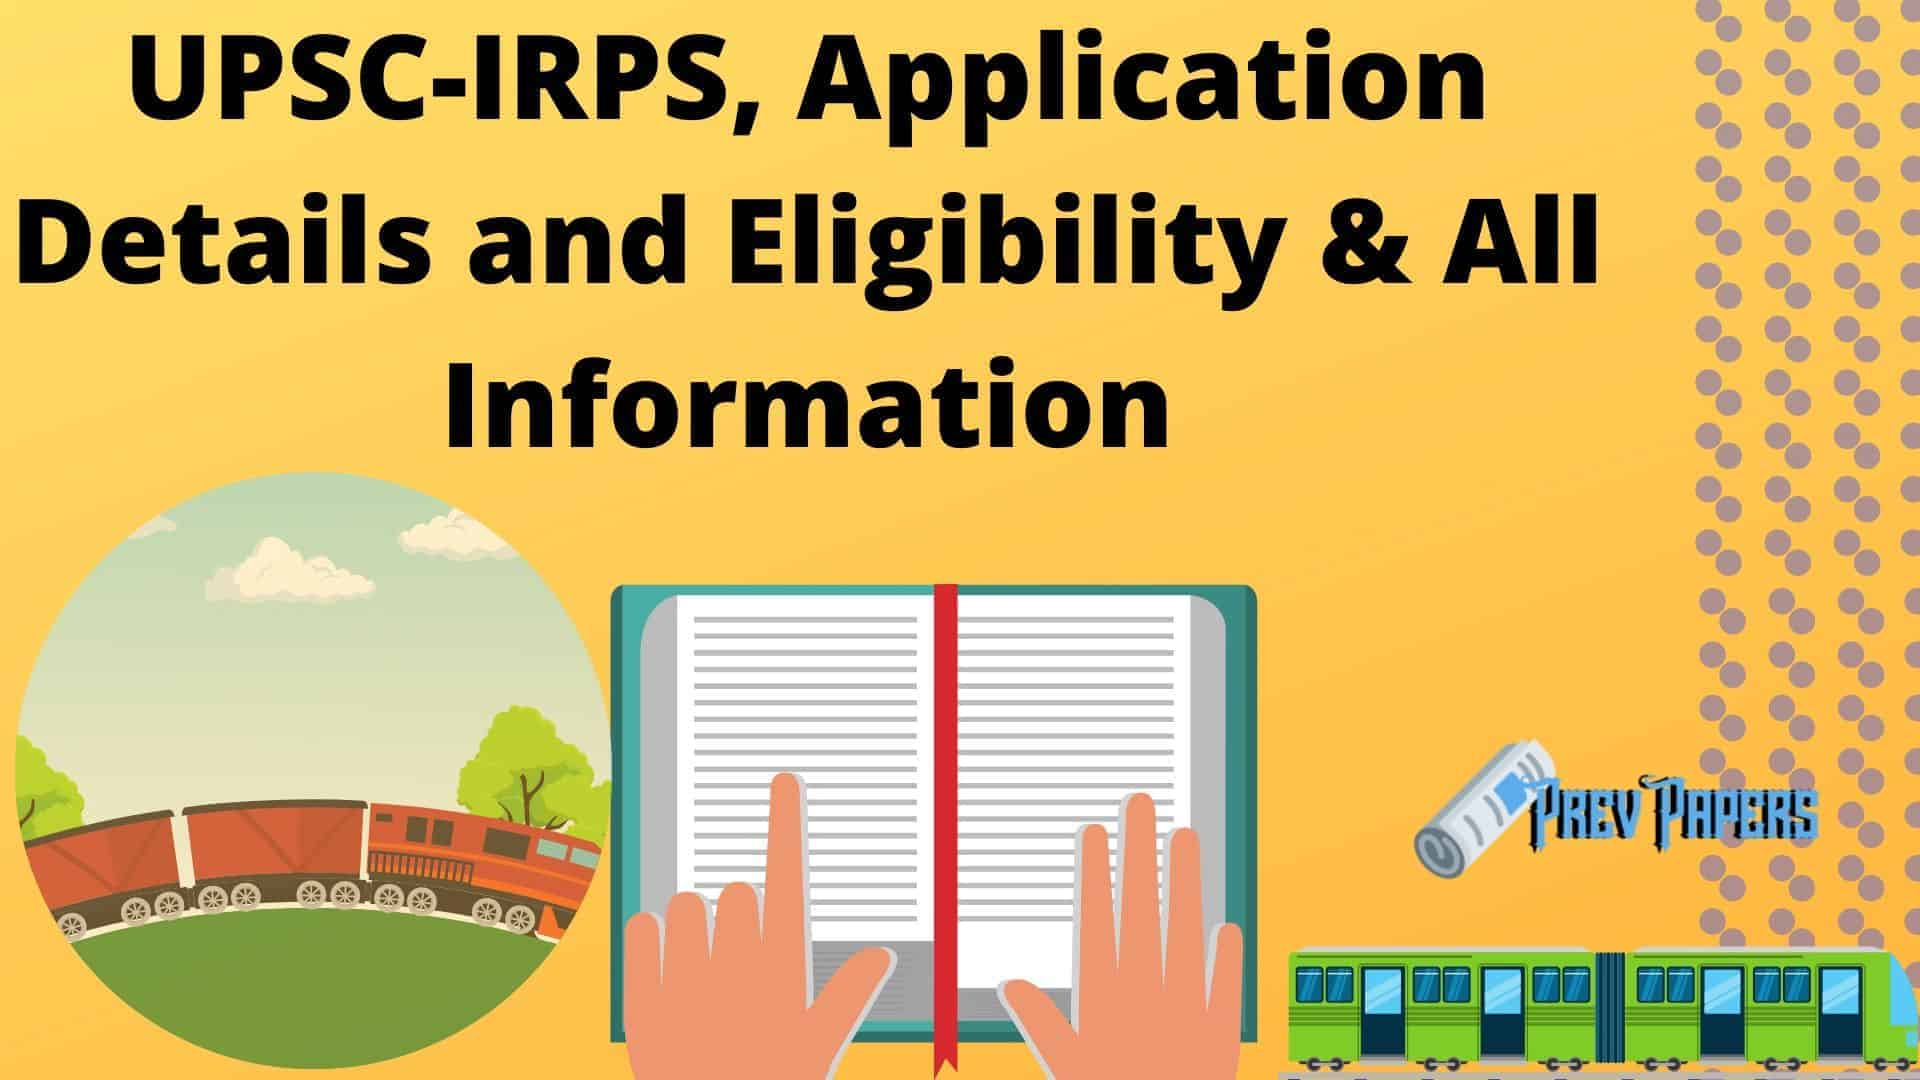 UPSC-IRPS, Application Details and Eligibility